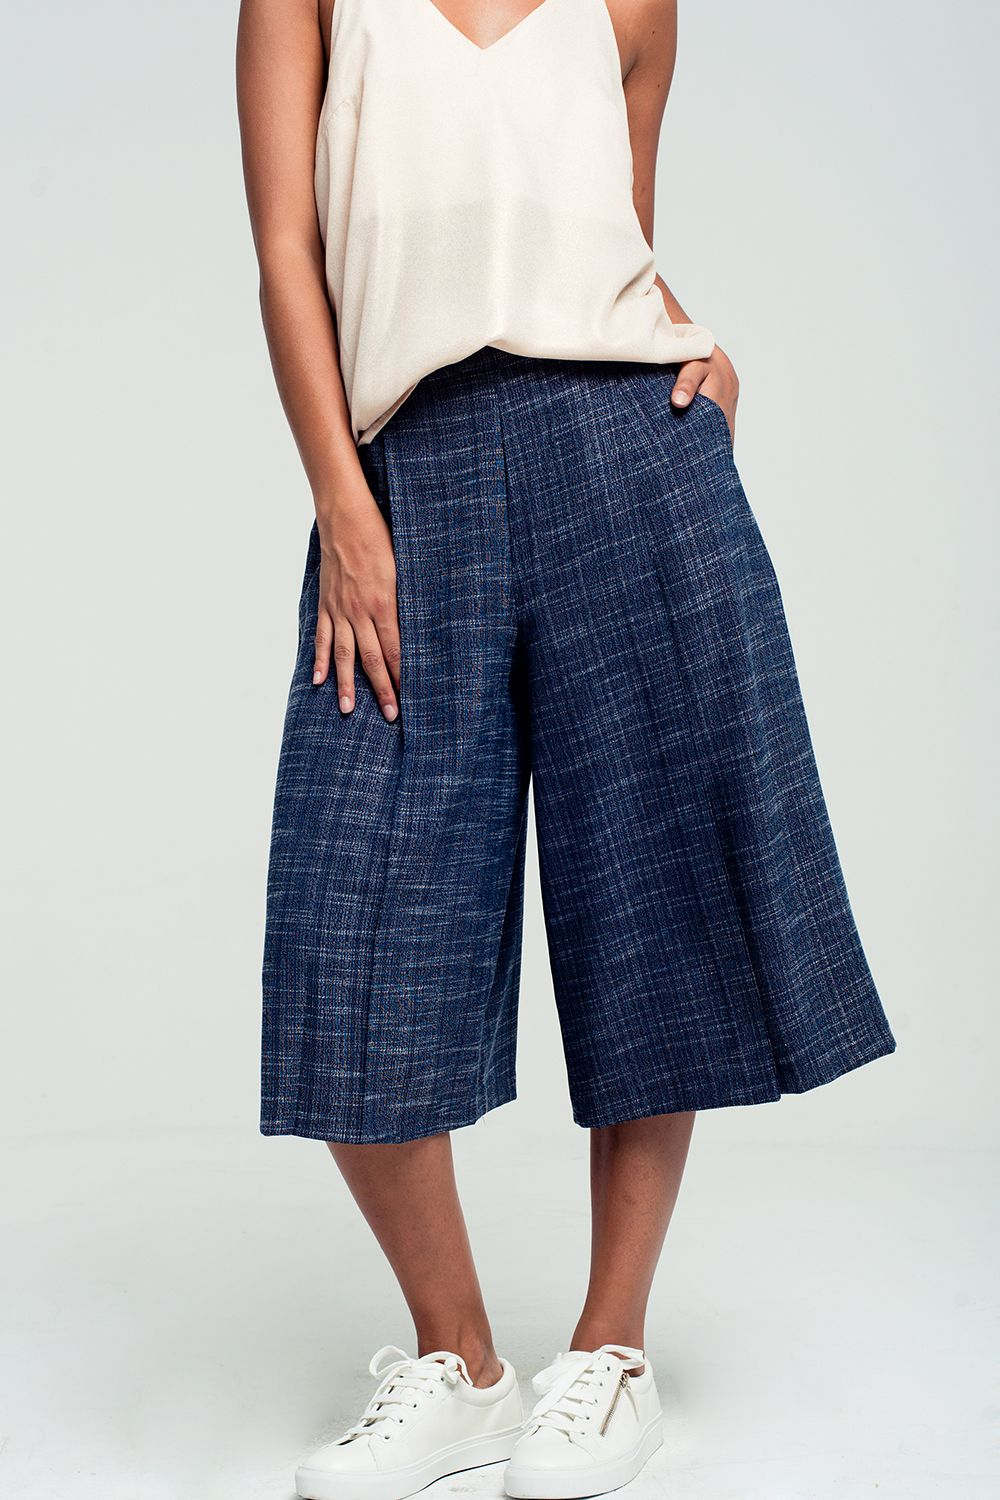 Tailored culottes casual pants in navy